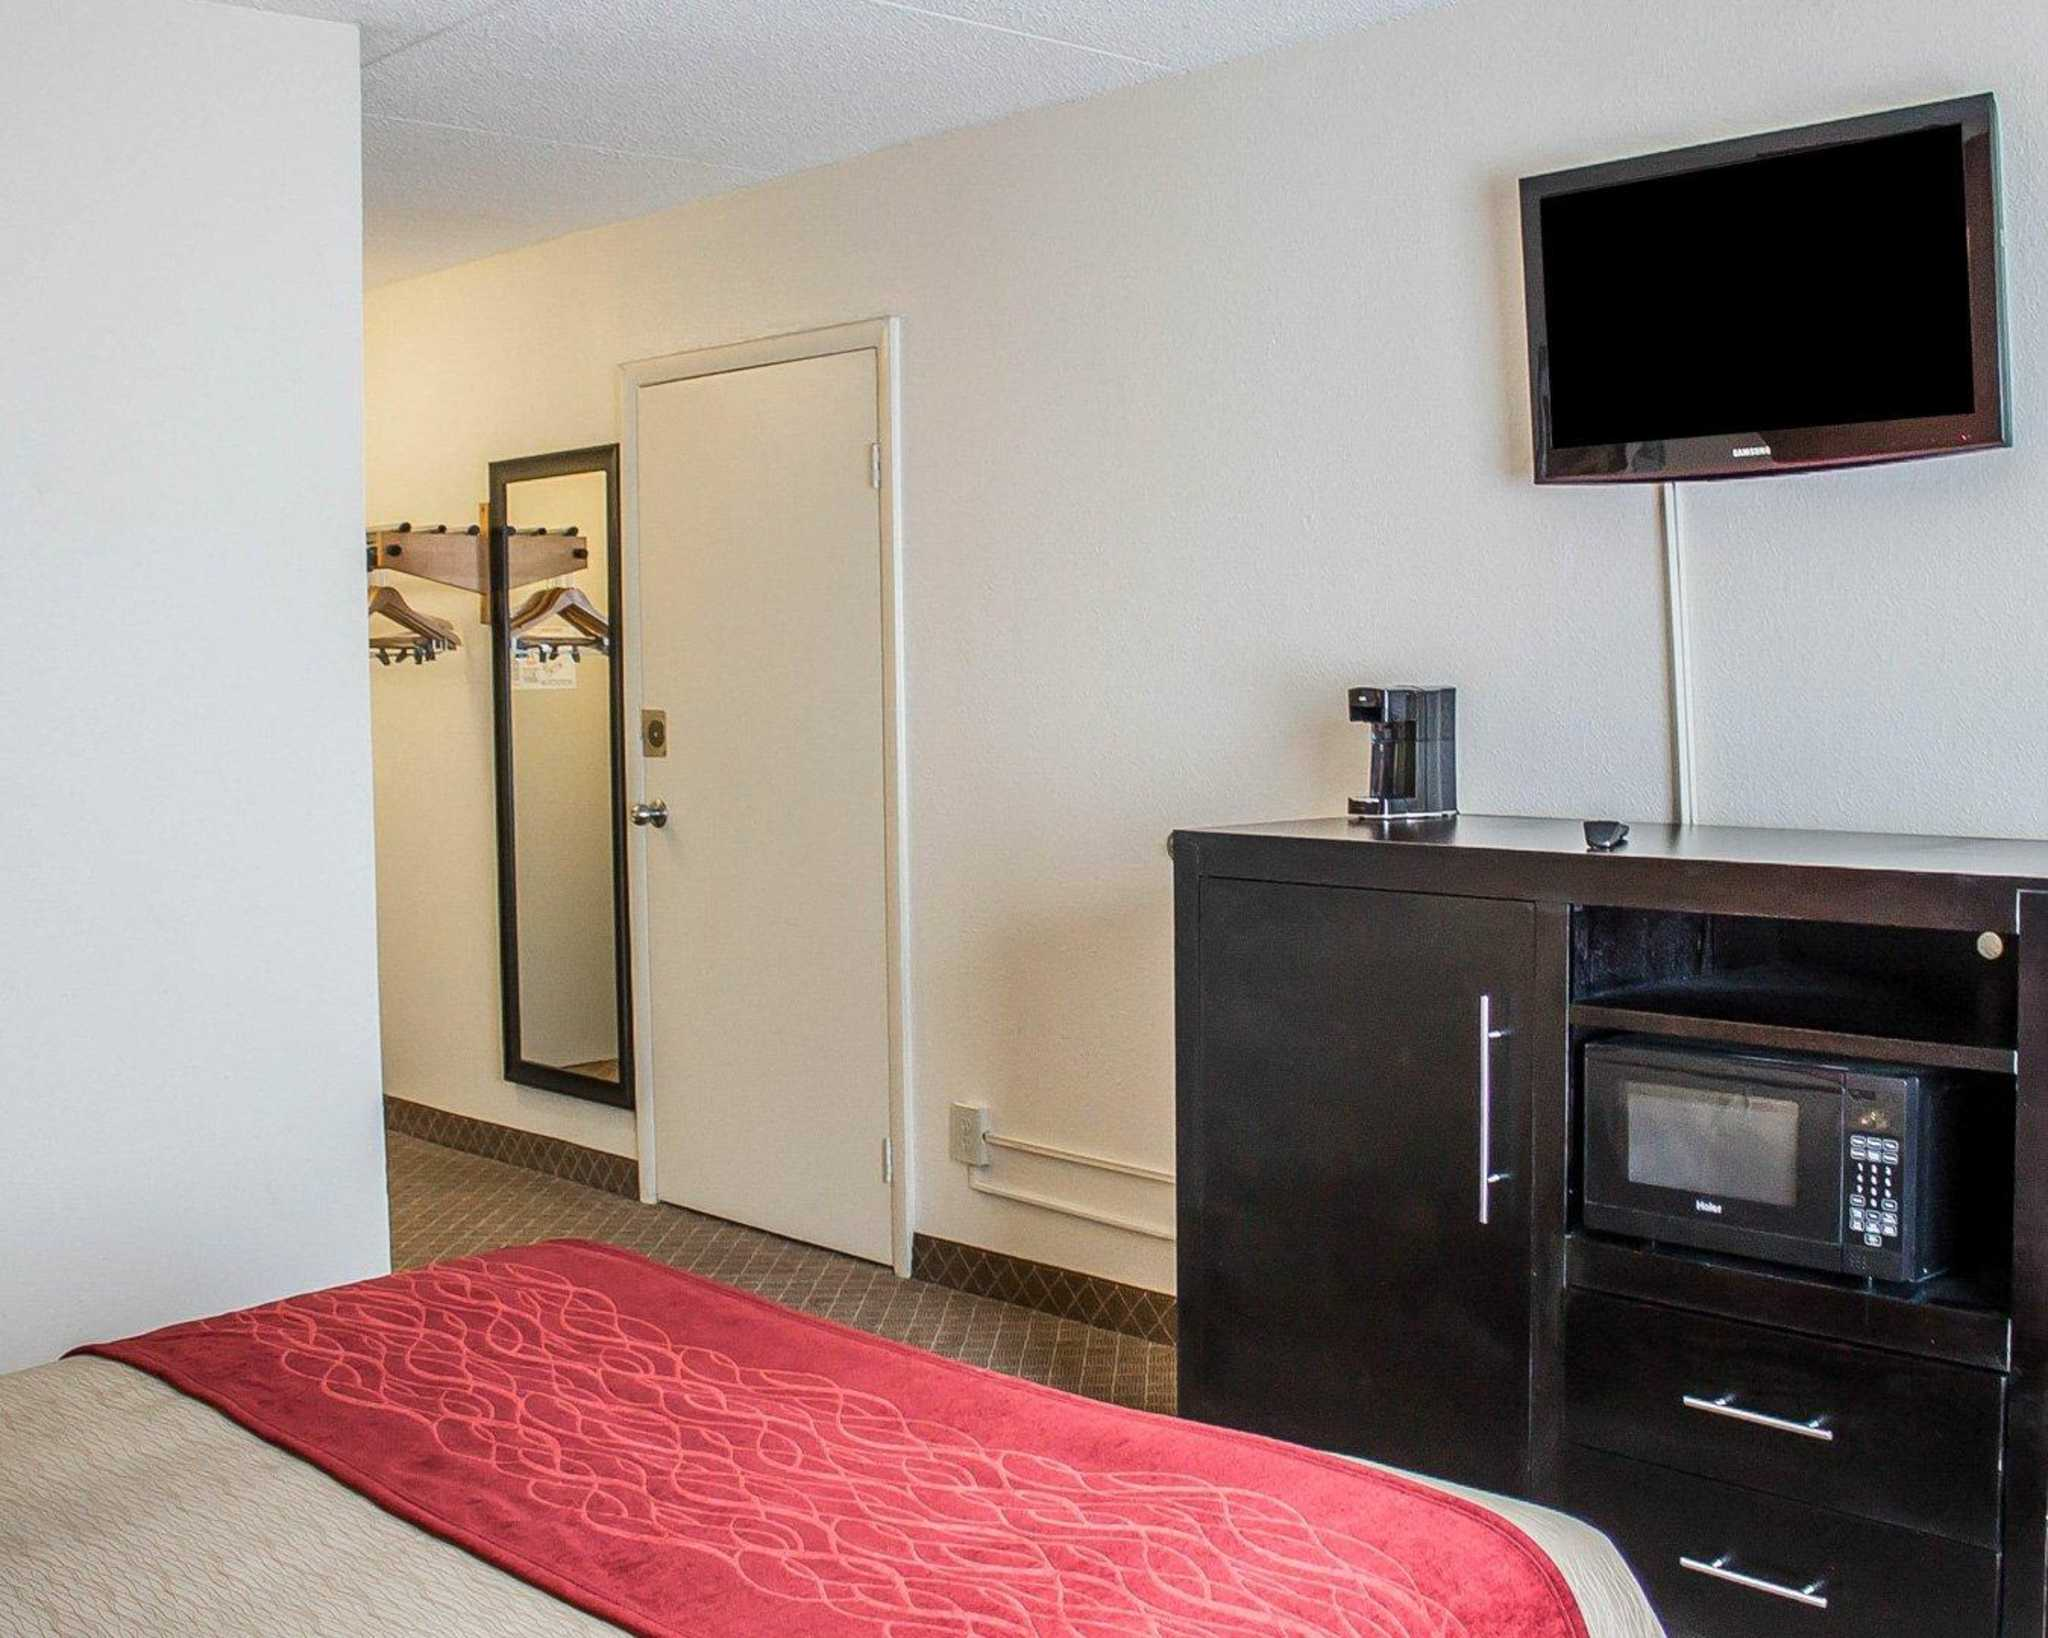 Comfort Inn North Conference Center image 18